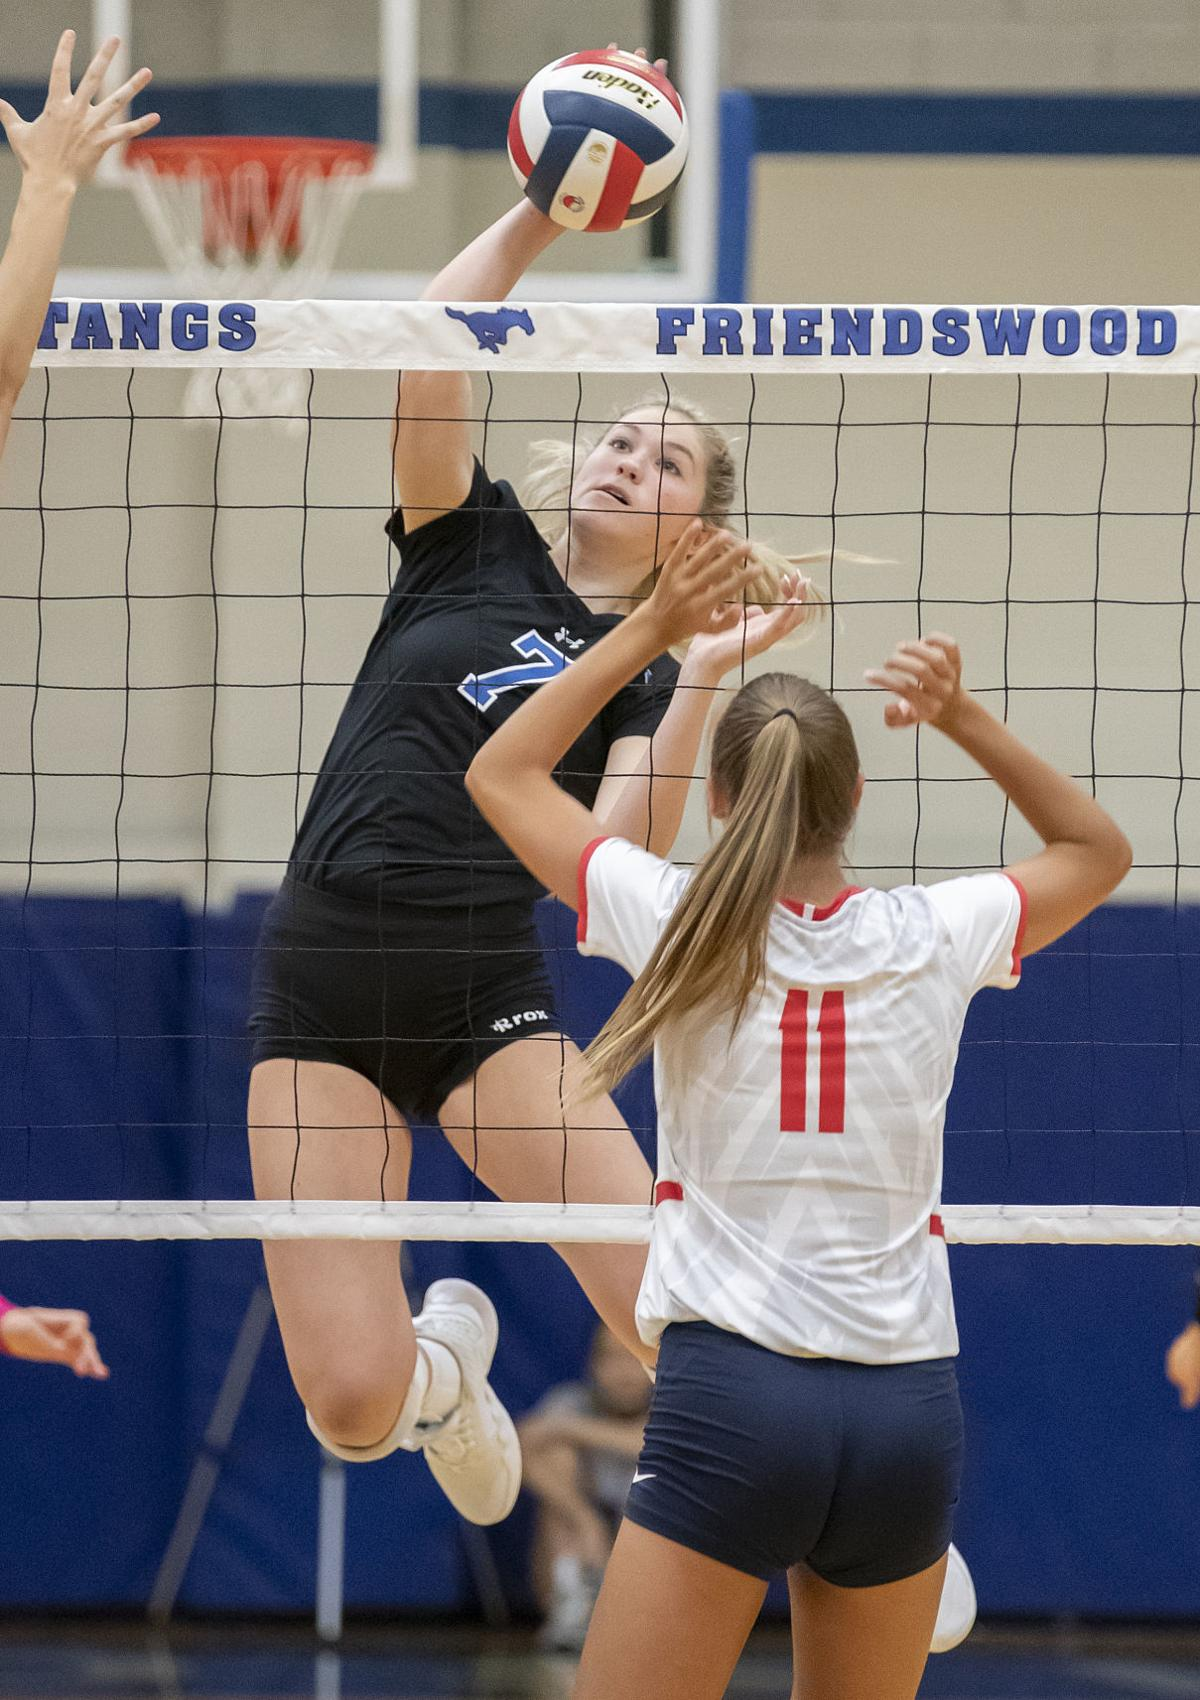 Friendswood vs Atascocita Volleyball